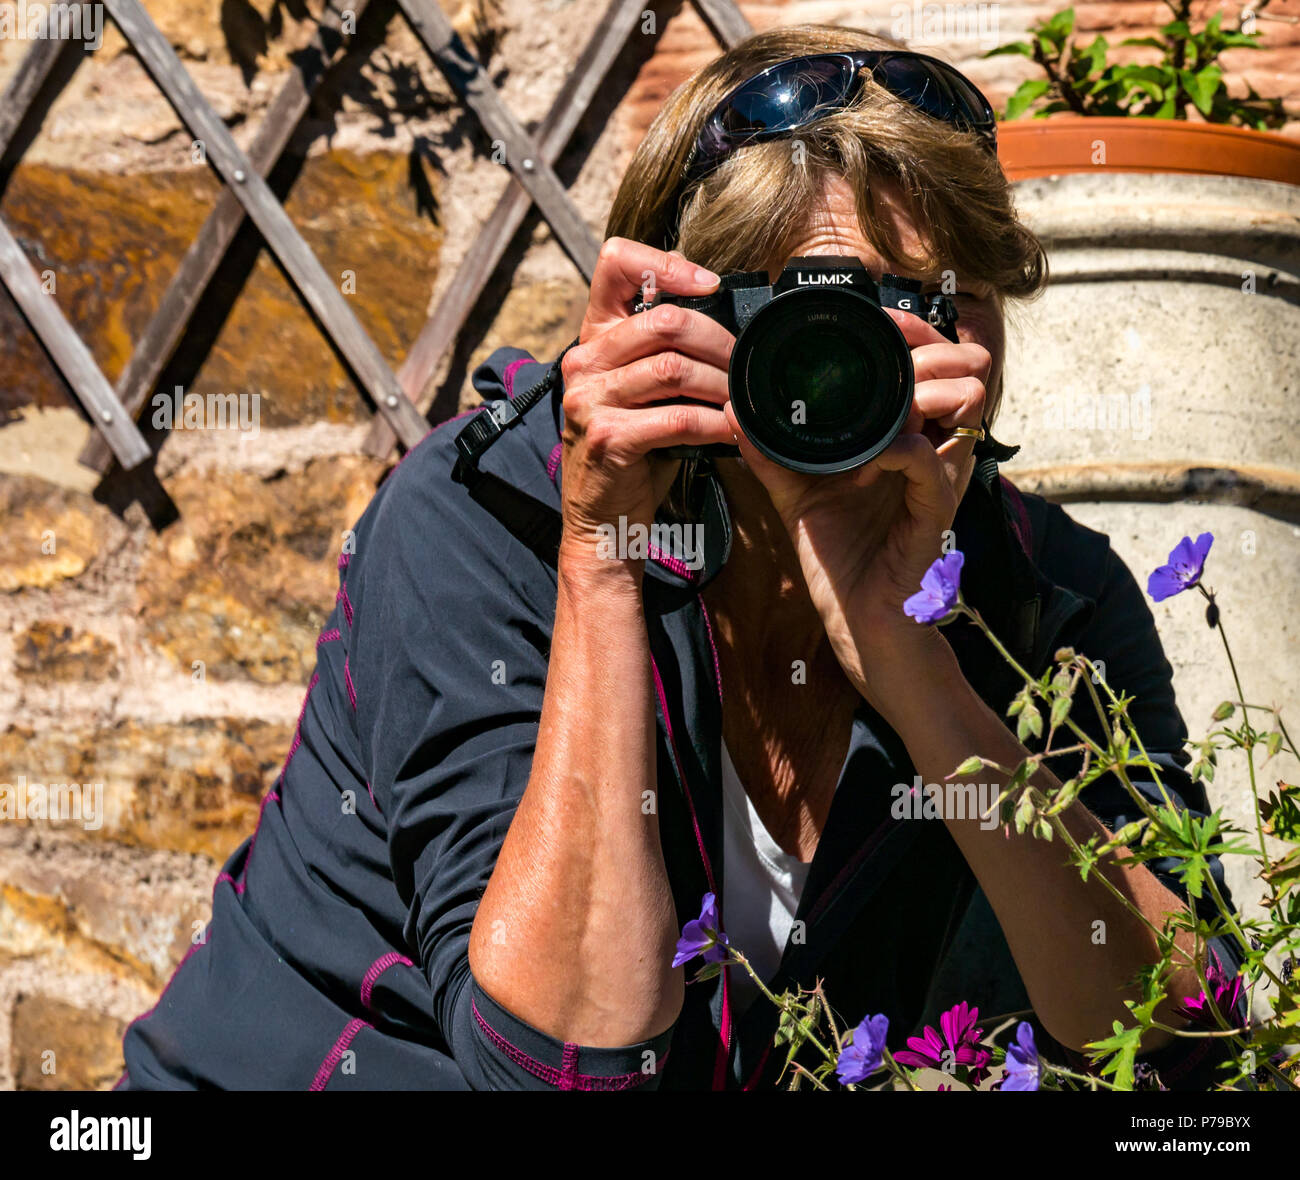 Older woman photographer wearing sunglasses taking photo in sunny garden with Panasonic Lumix G7 micro four thirds camera, looking into camera - Stock Image